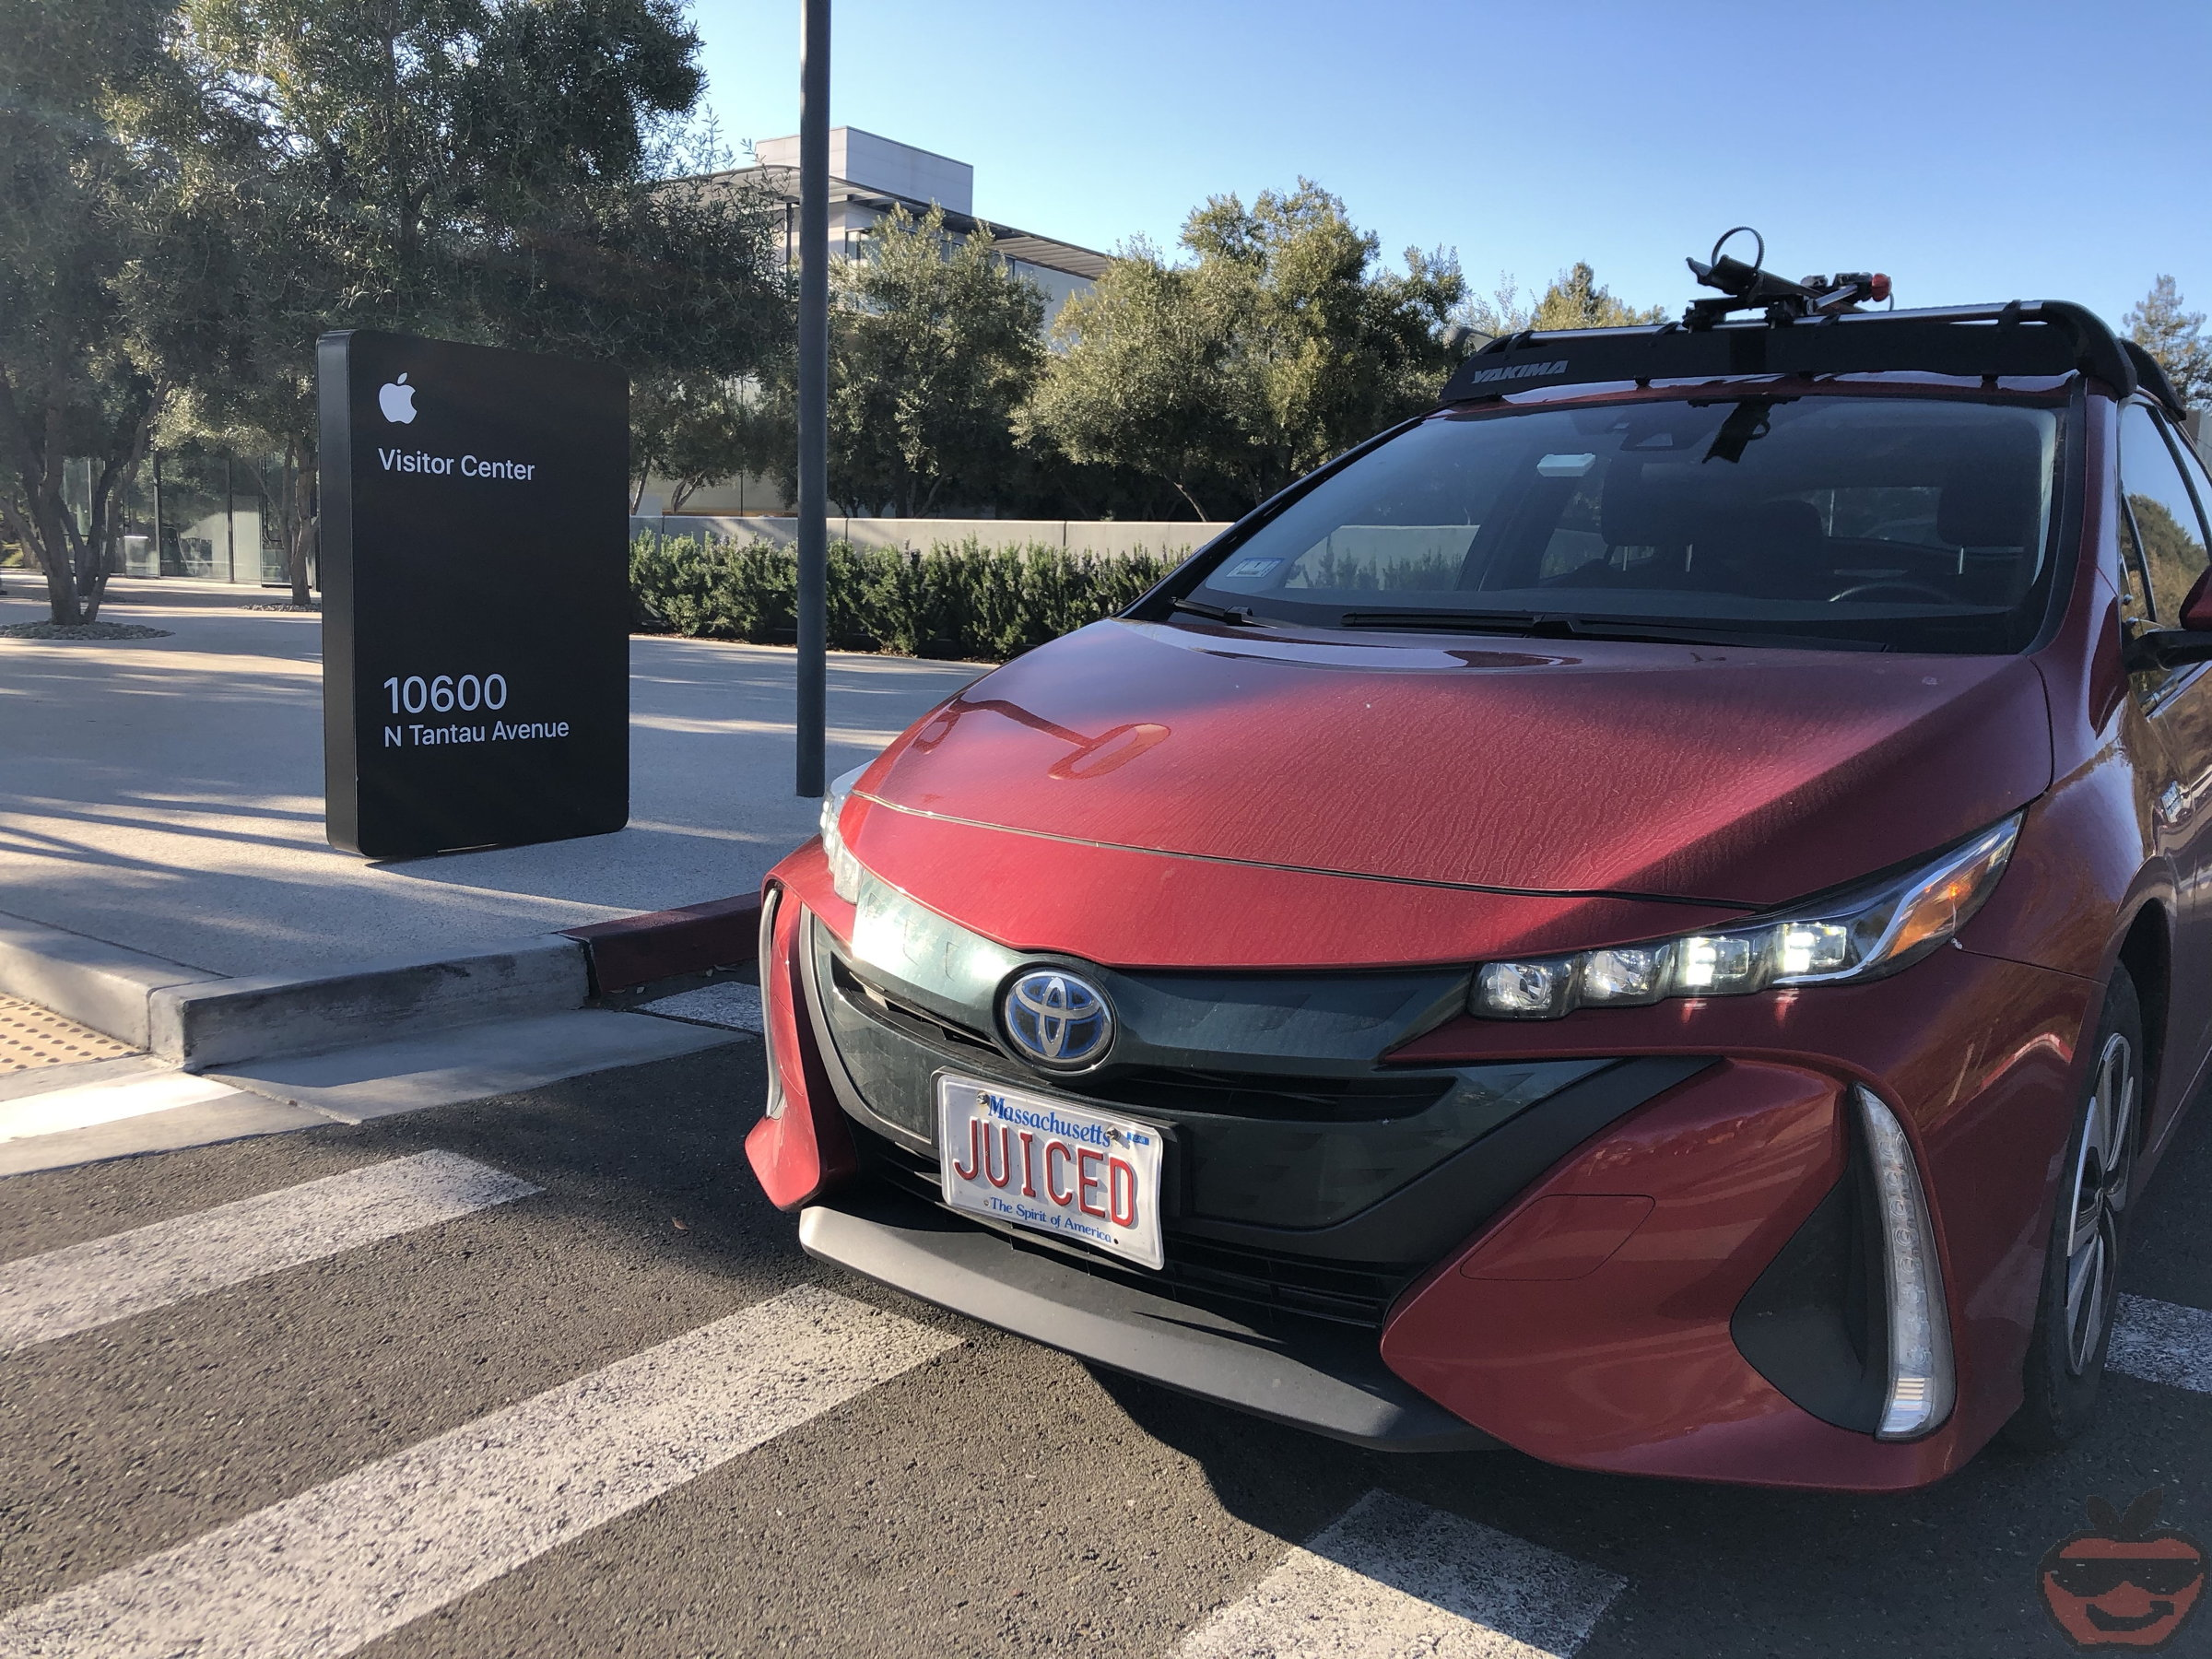 Ken's red Toyota Prius Prime outside the Apple visitor center